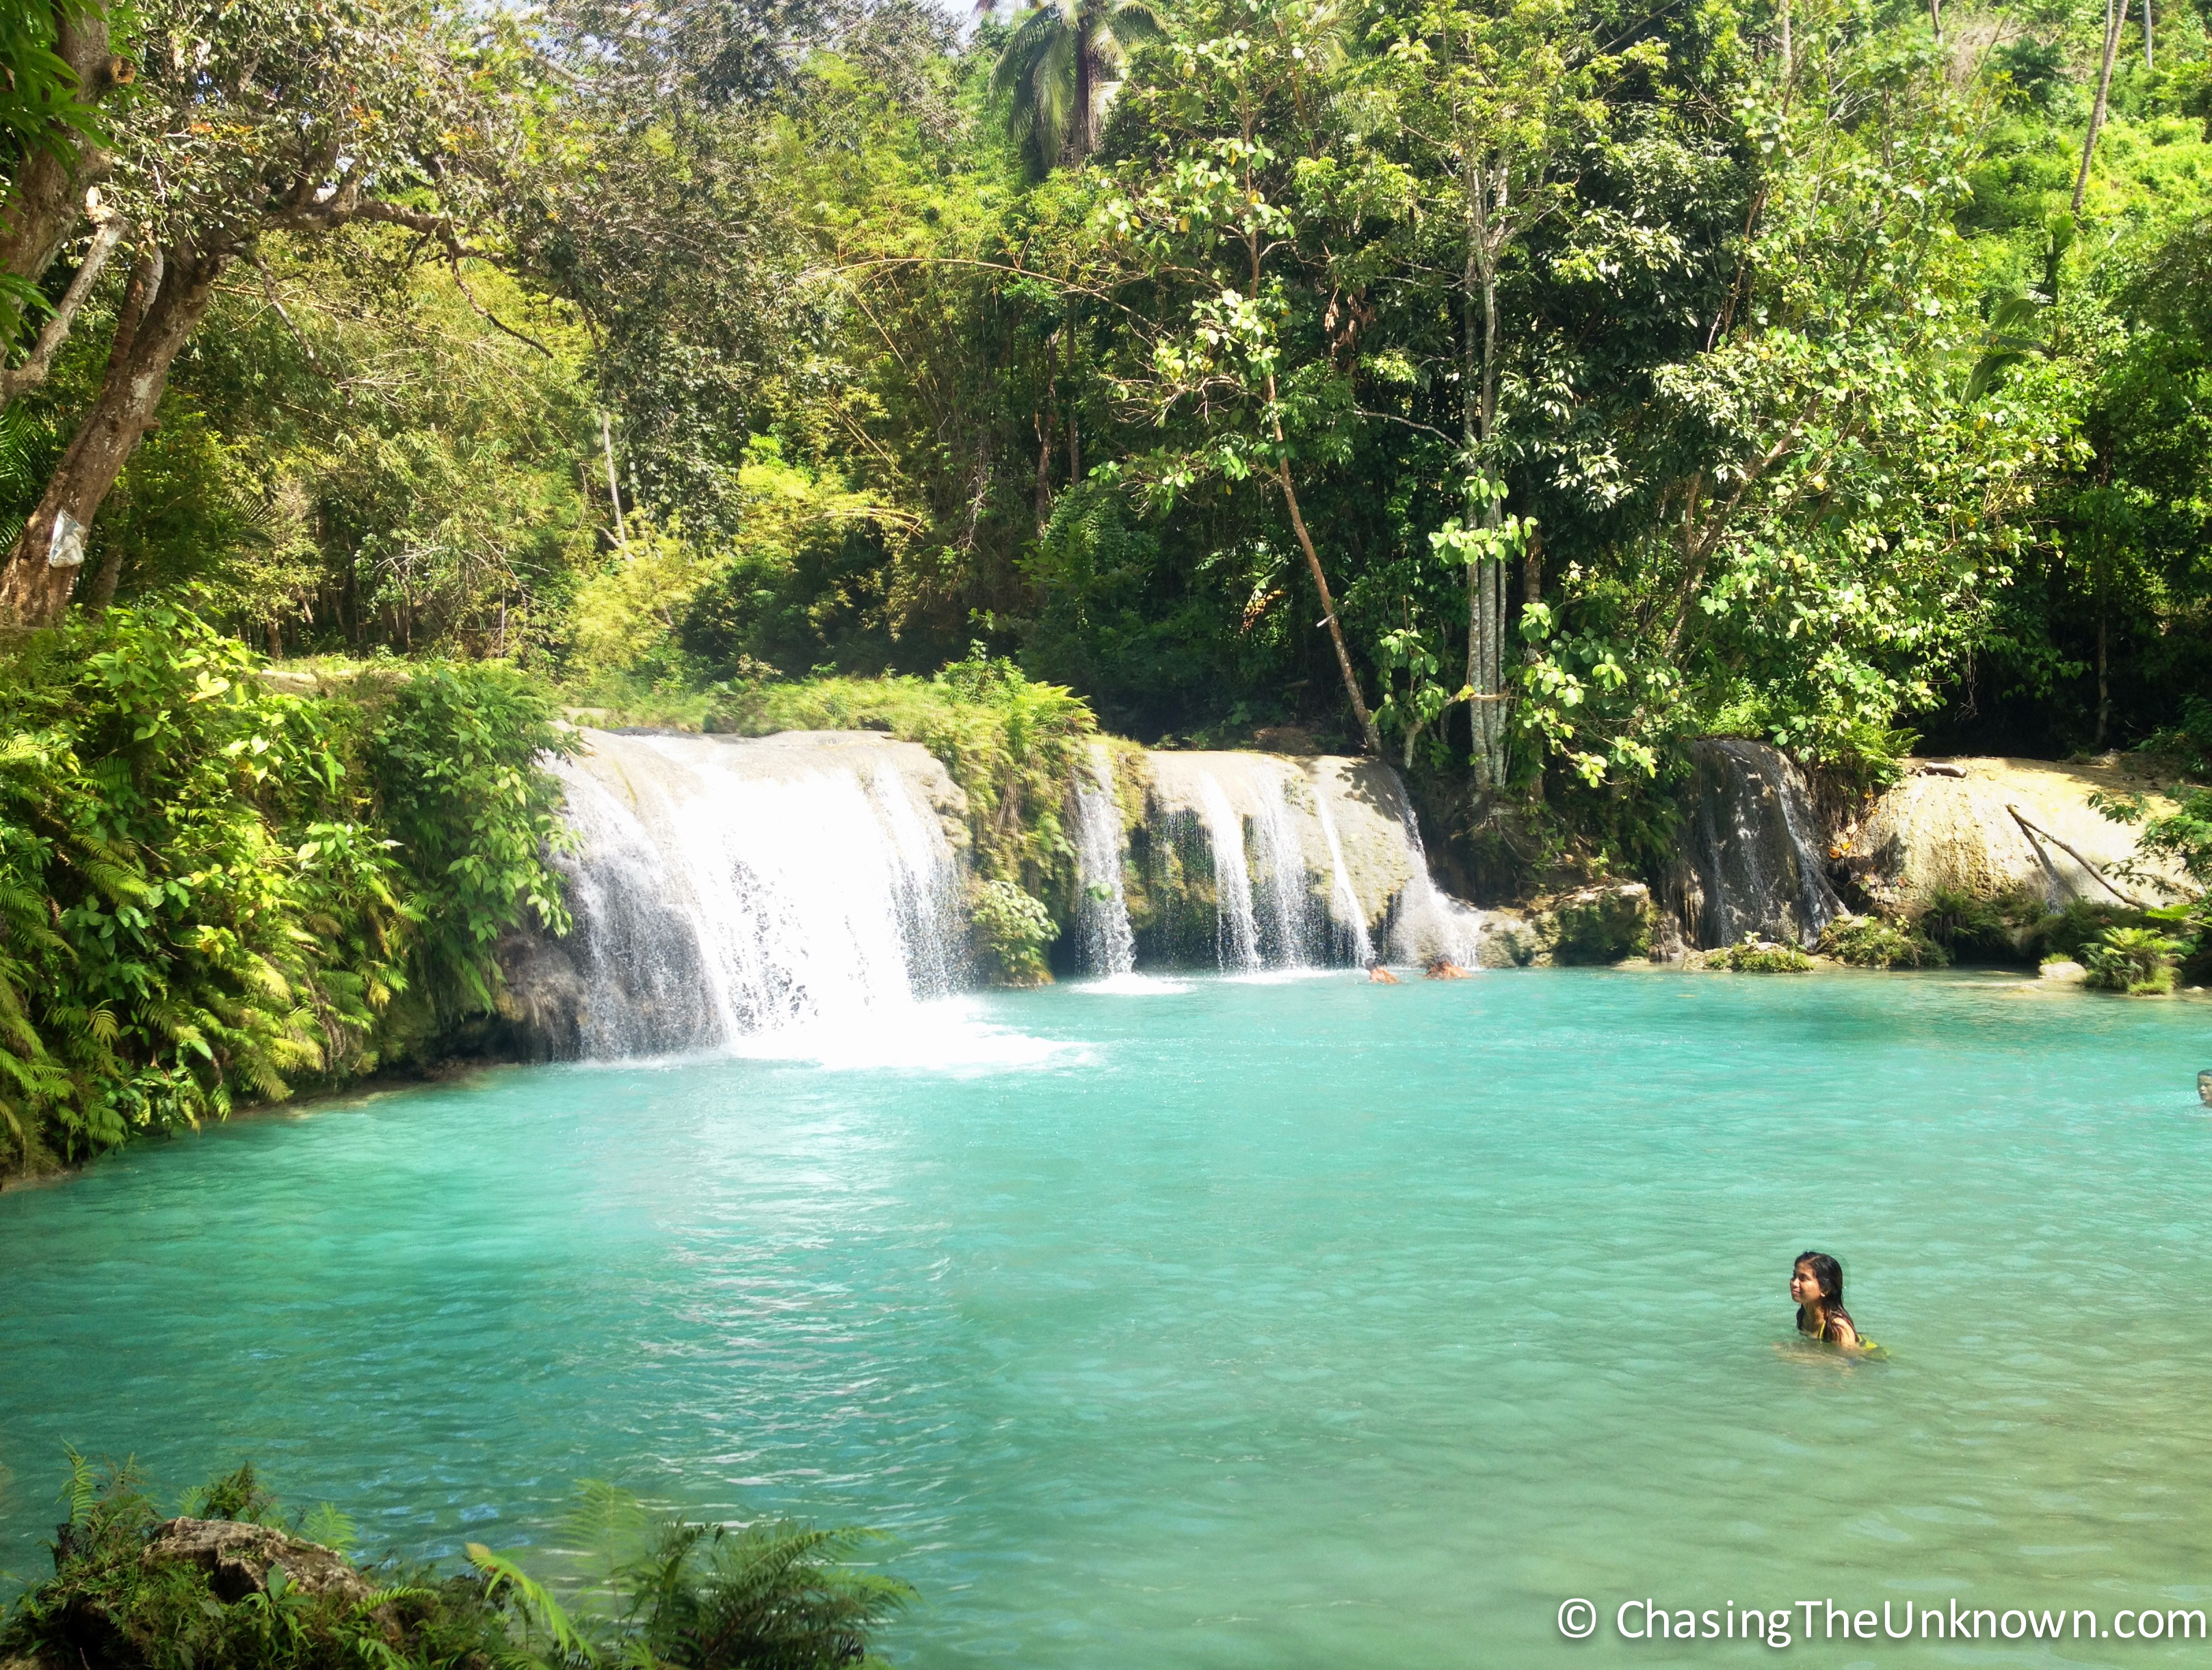 Siquijor: an inexplicable place